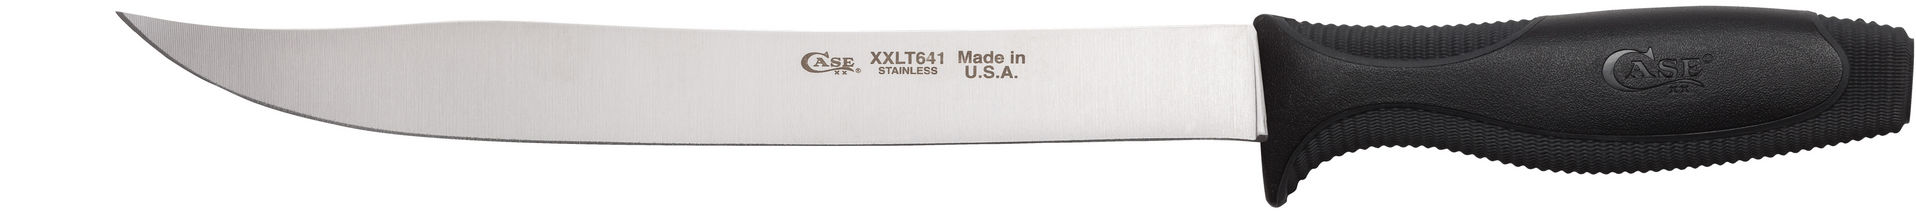 CASE XX KNIFE 31714 BLACK SLICING KNIFE